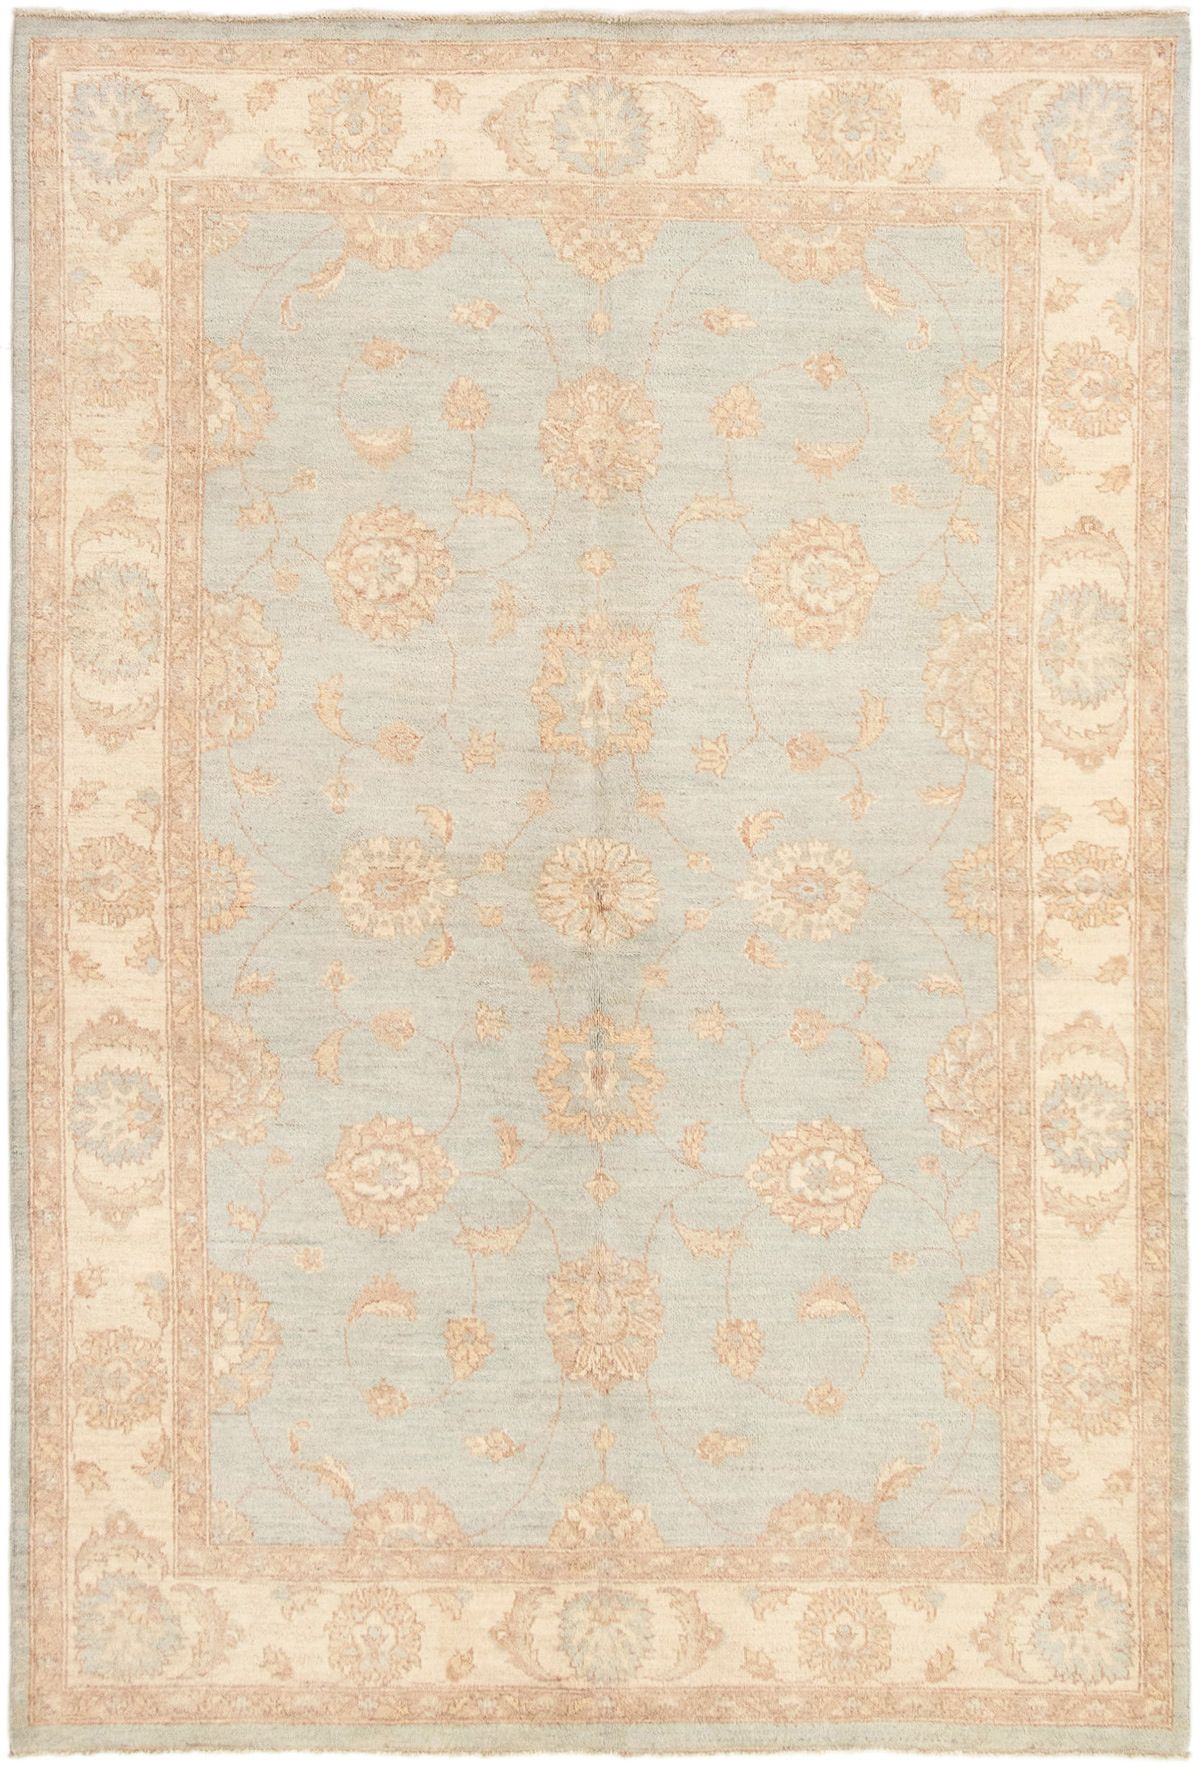 """Hand-knotted Peshawar Finest Light Blue  Wool Rug 5'7"""" x 8'3"""" Size: 5'7"""" x 8'3"""""""